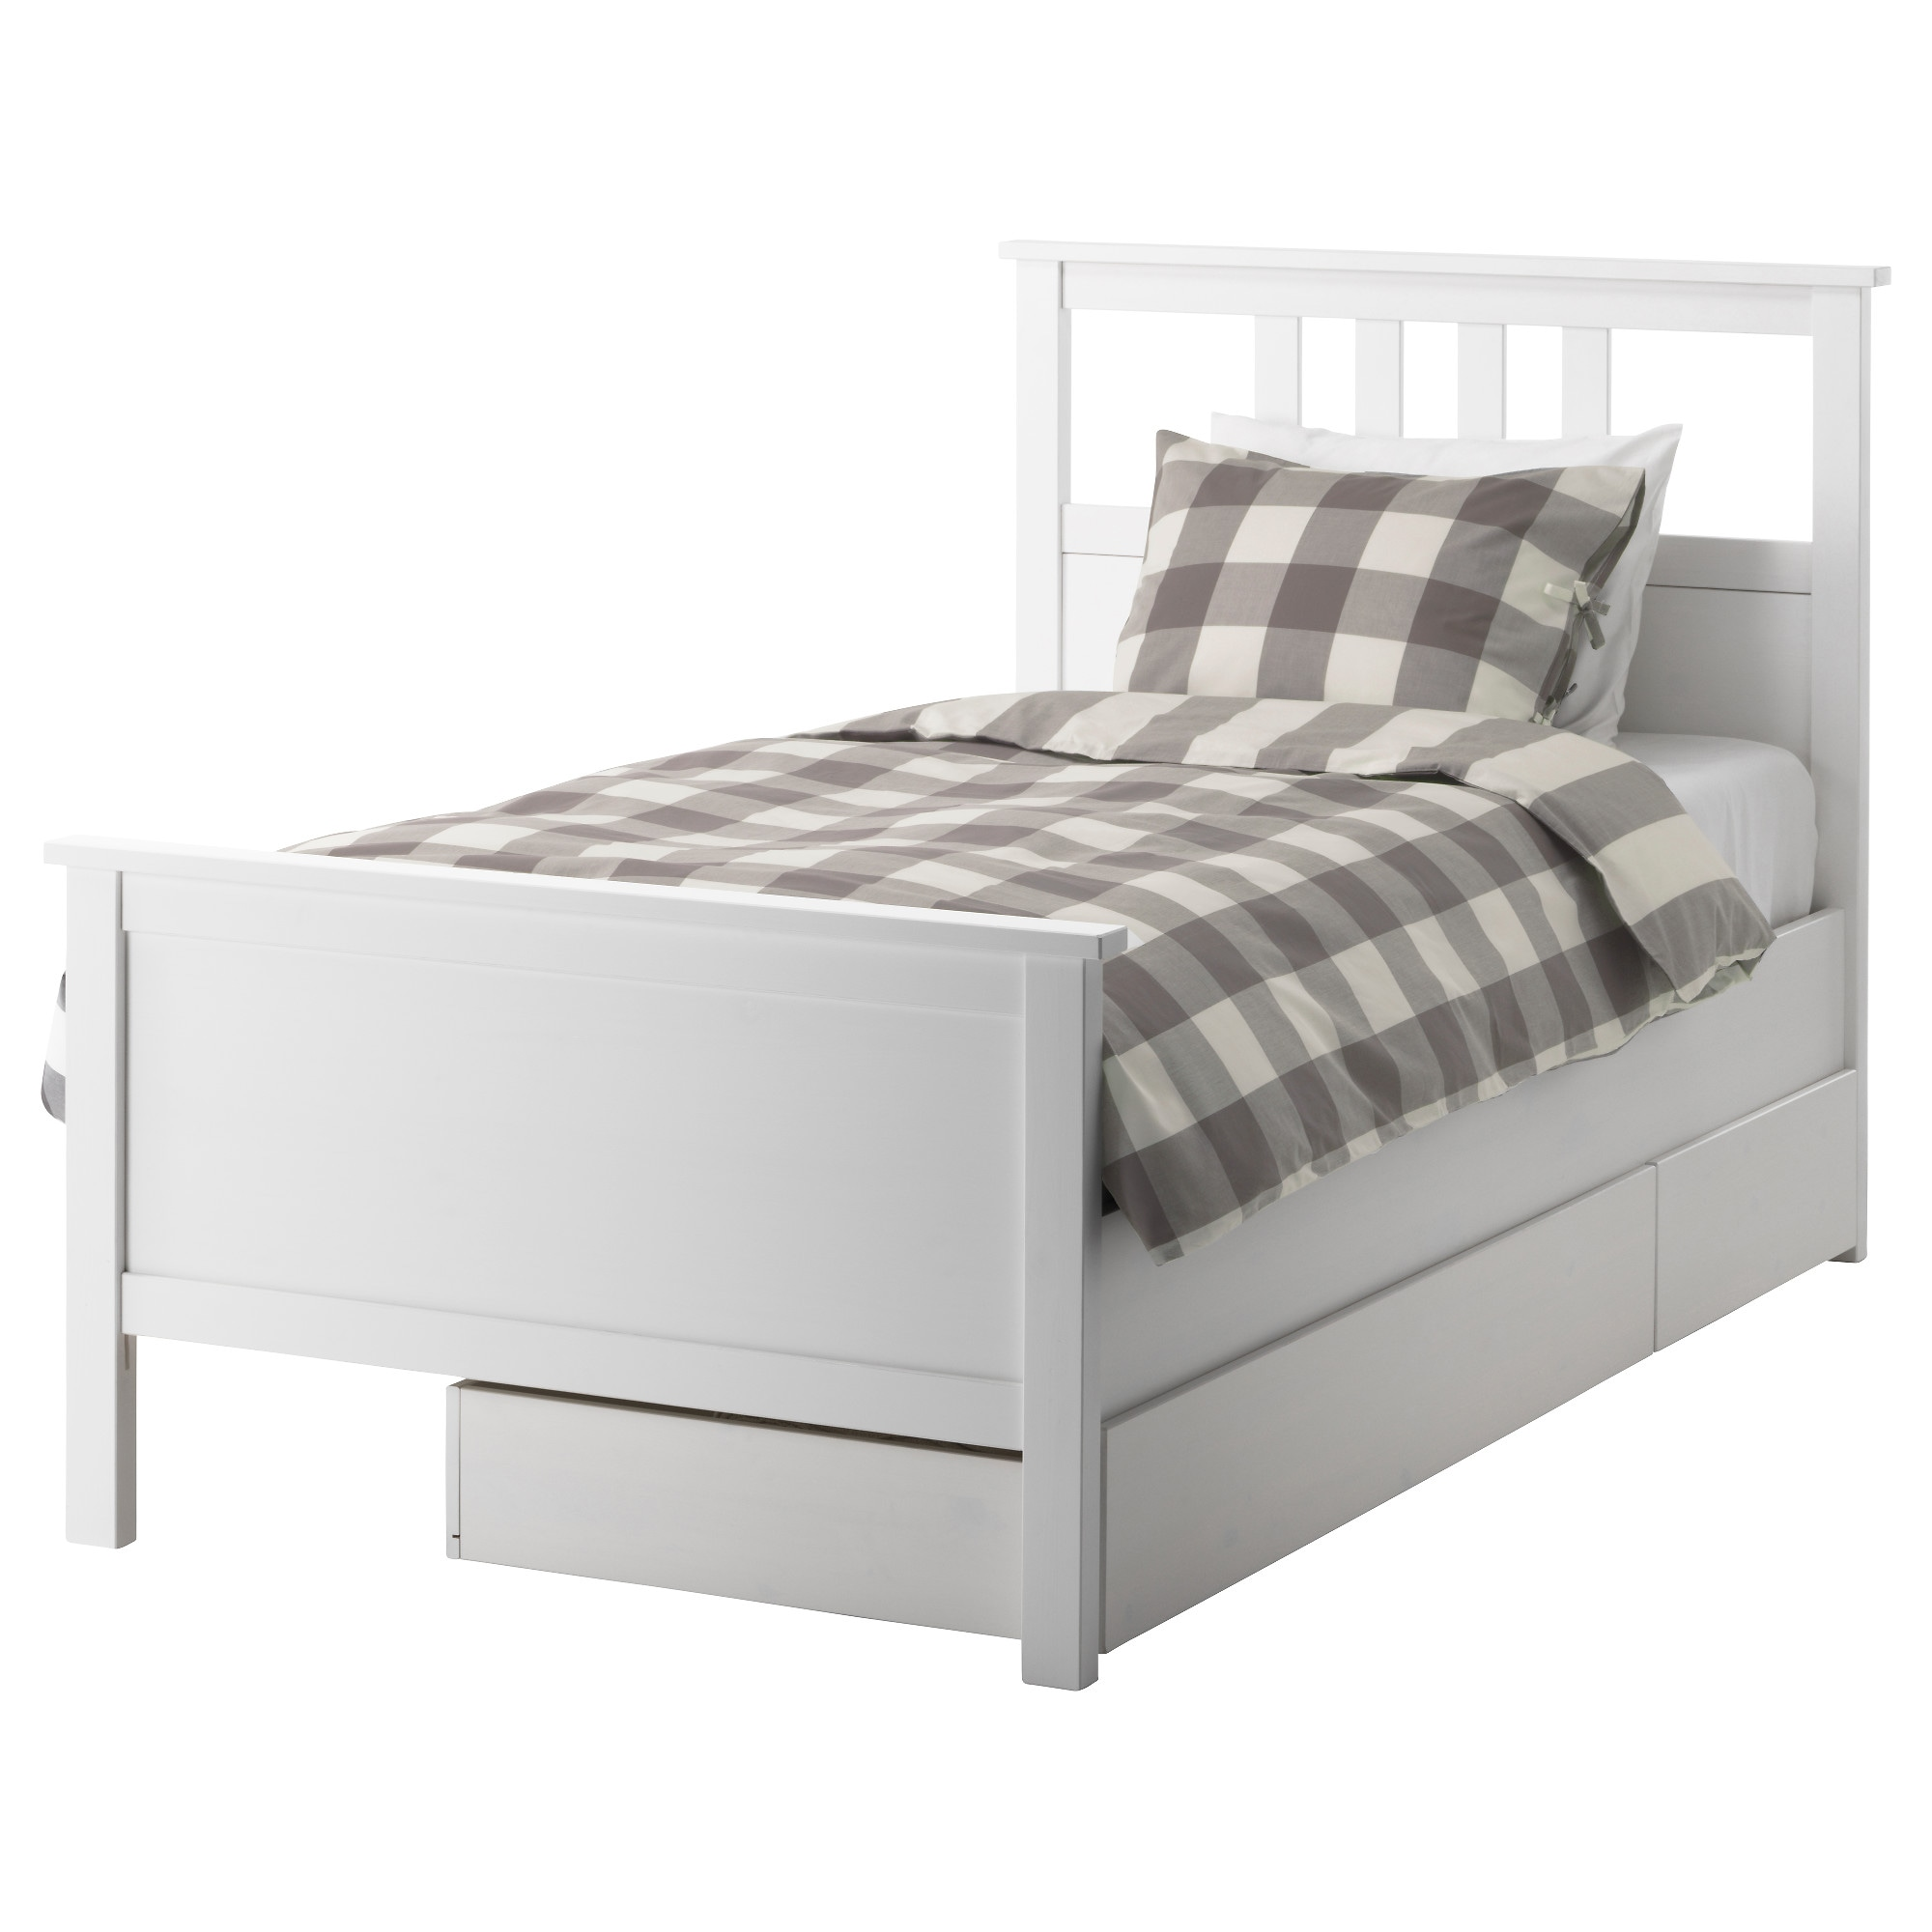 Bed frames with storage drawers - Hemnes Bed Frame With 2 Storage Boxes White Stain Length 79 1 8